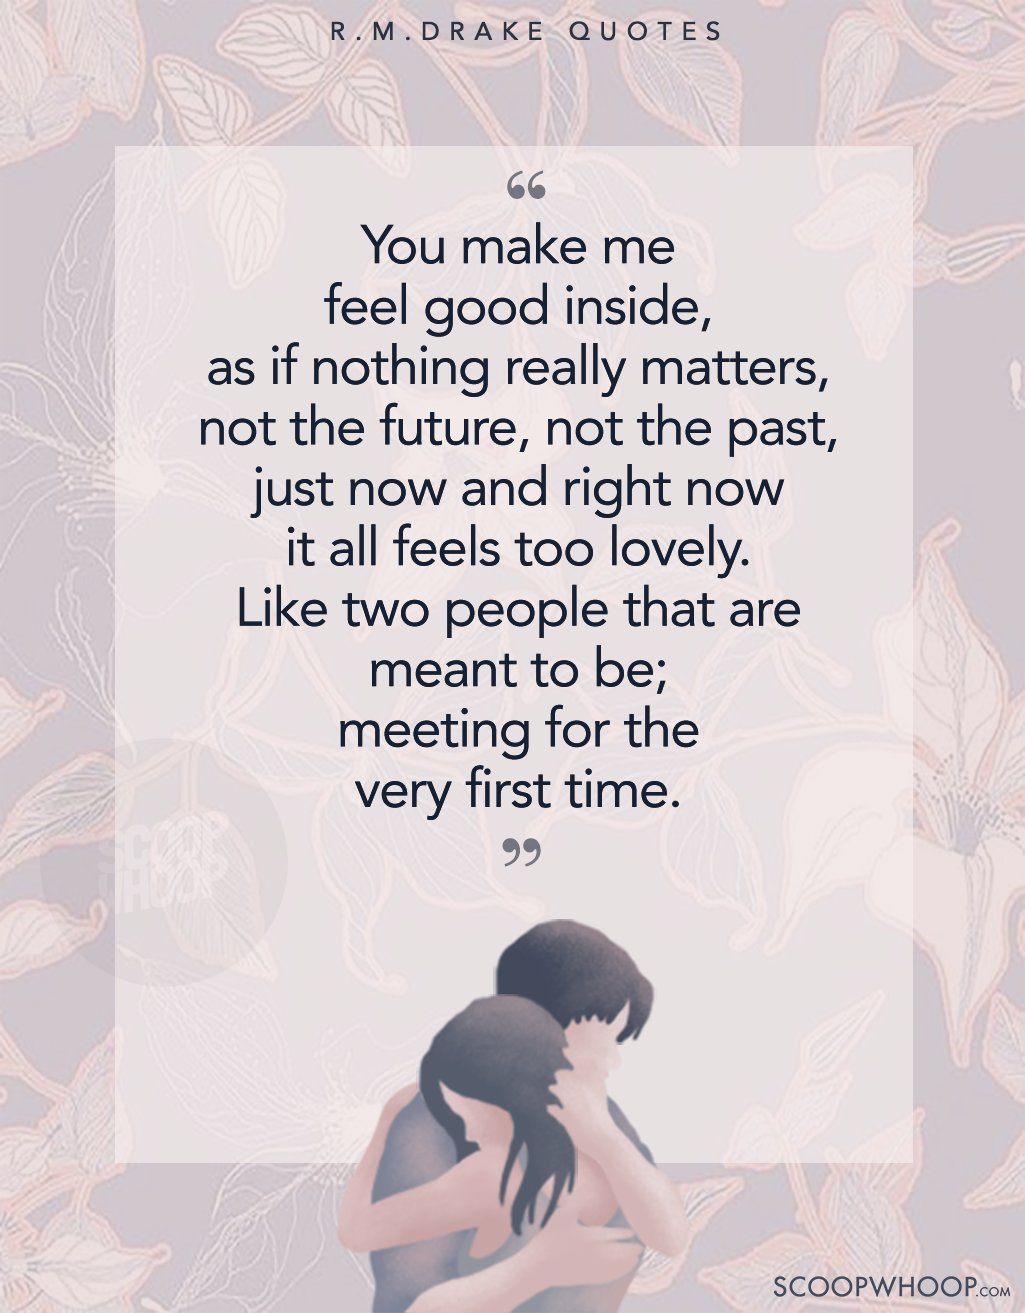 Beautiful Lines Penned By R.M. Drake That Perfectly Capture ...